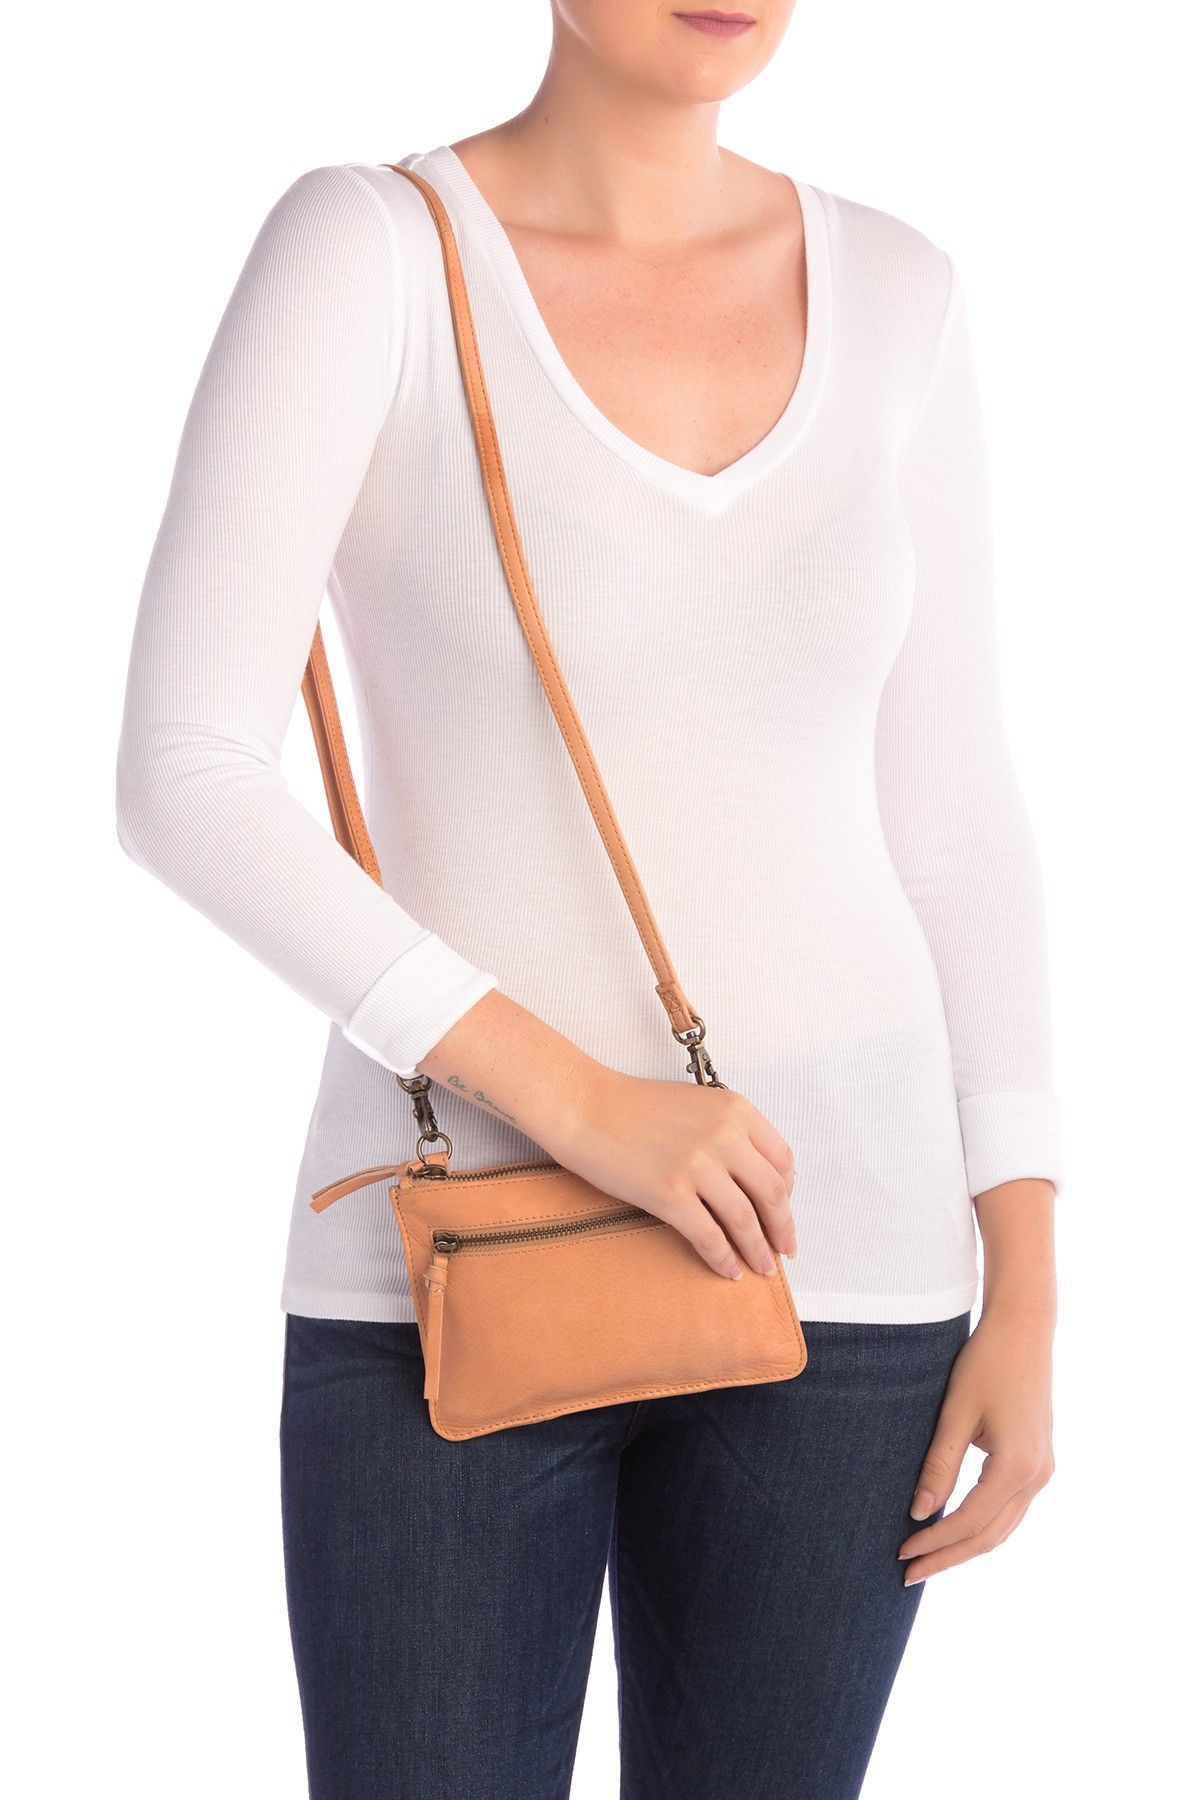 Day & Mood | Lily Leather Crossbody Bag #nordstromrack